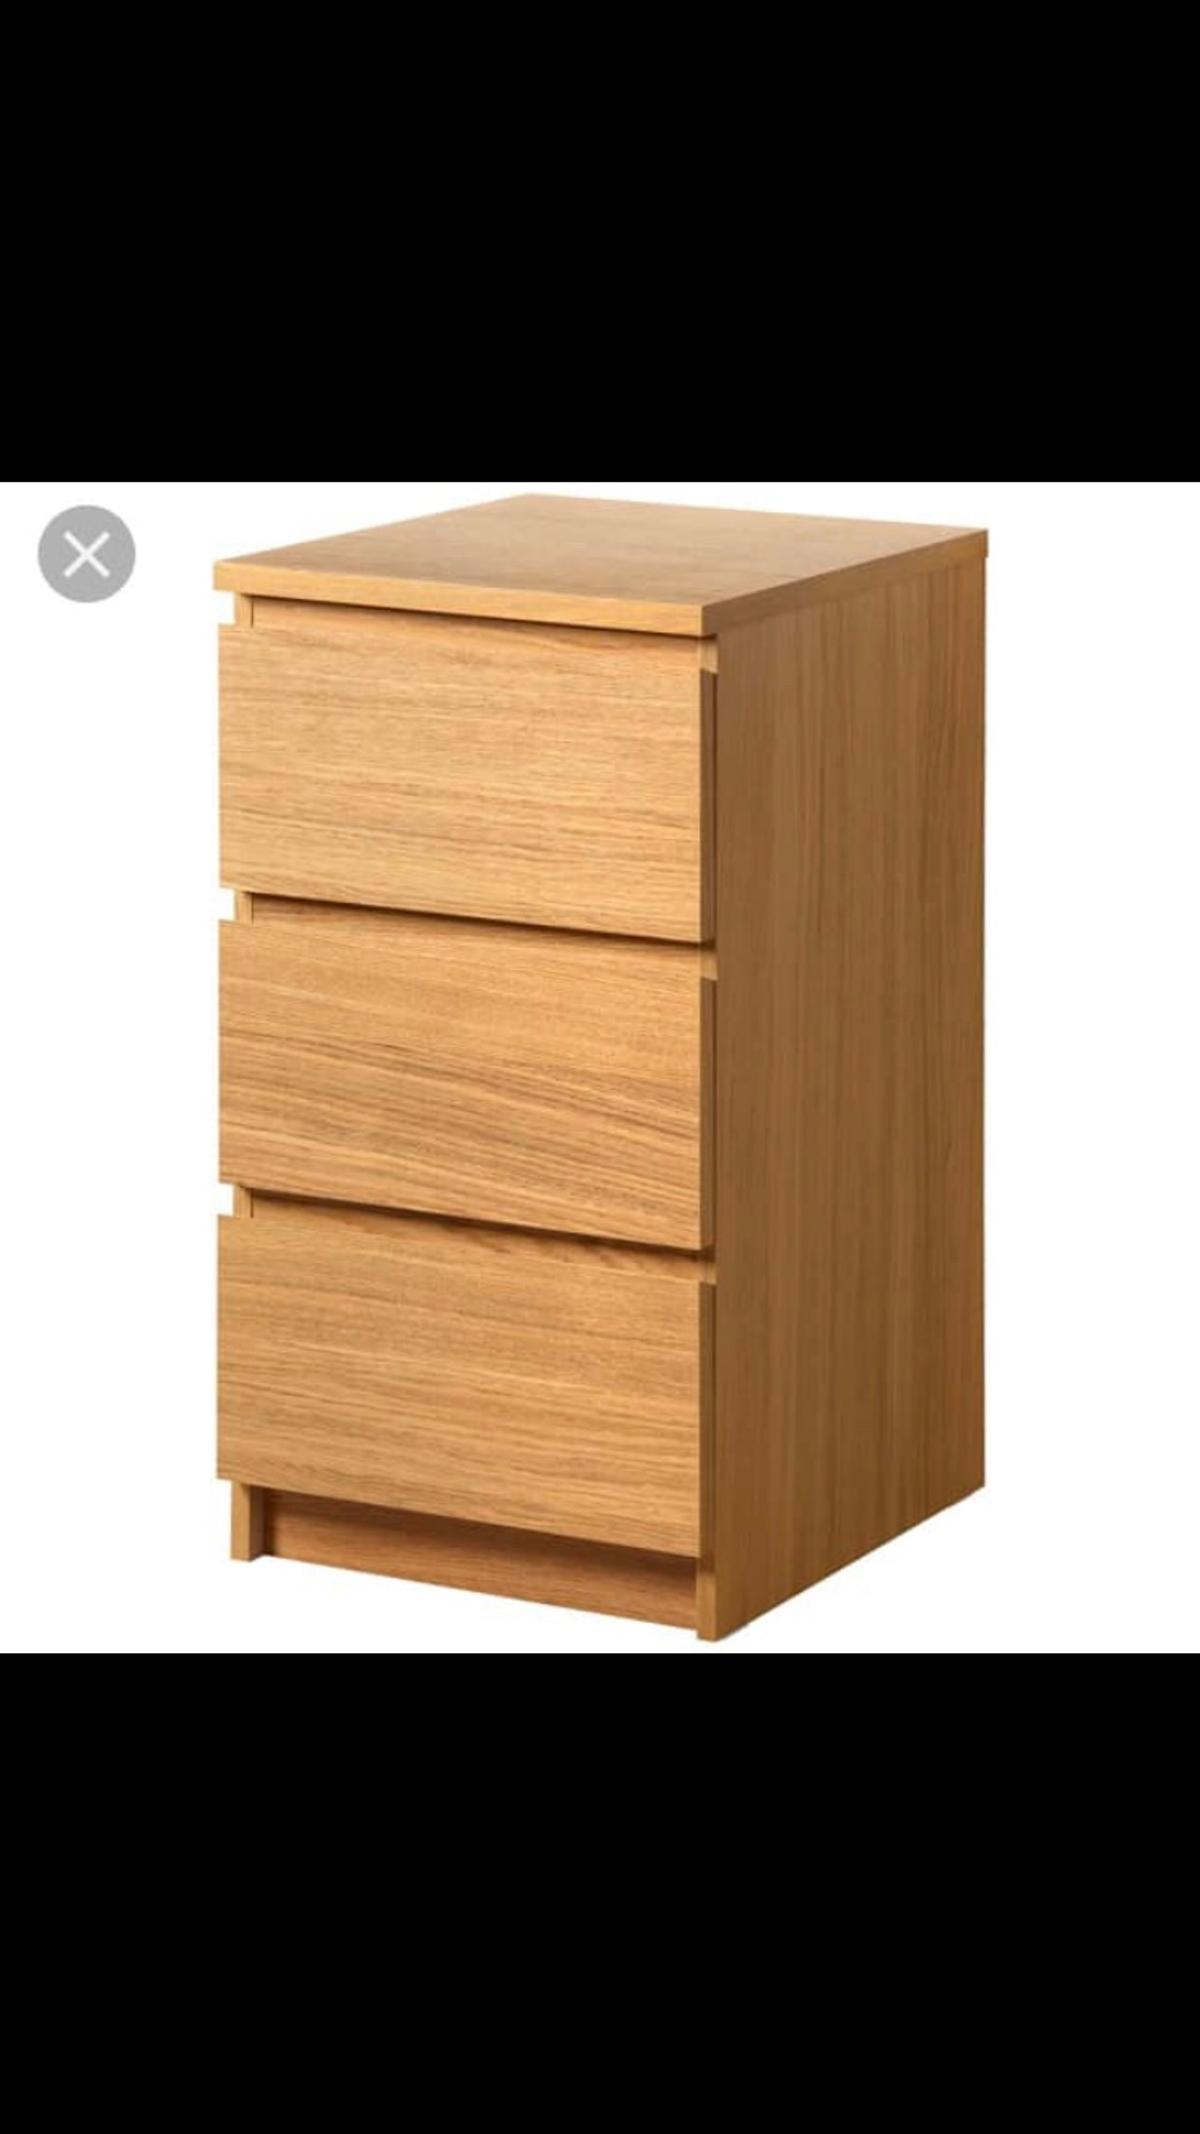 Bedside Table Chest Of 3 Drawers In B77 Tamworth For 25 00